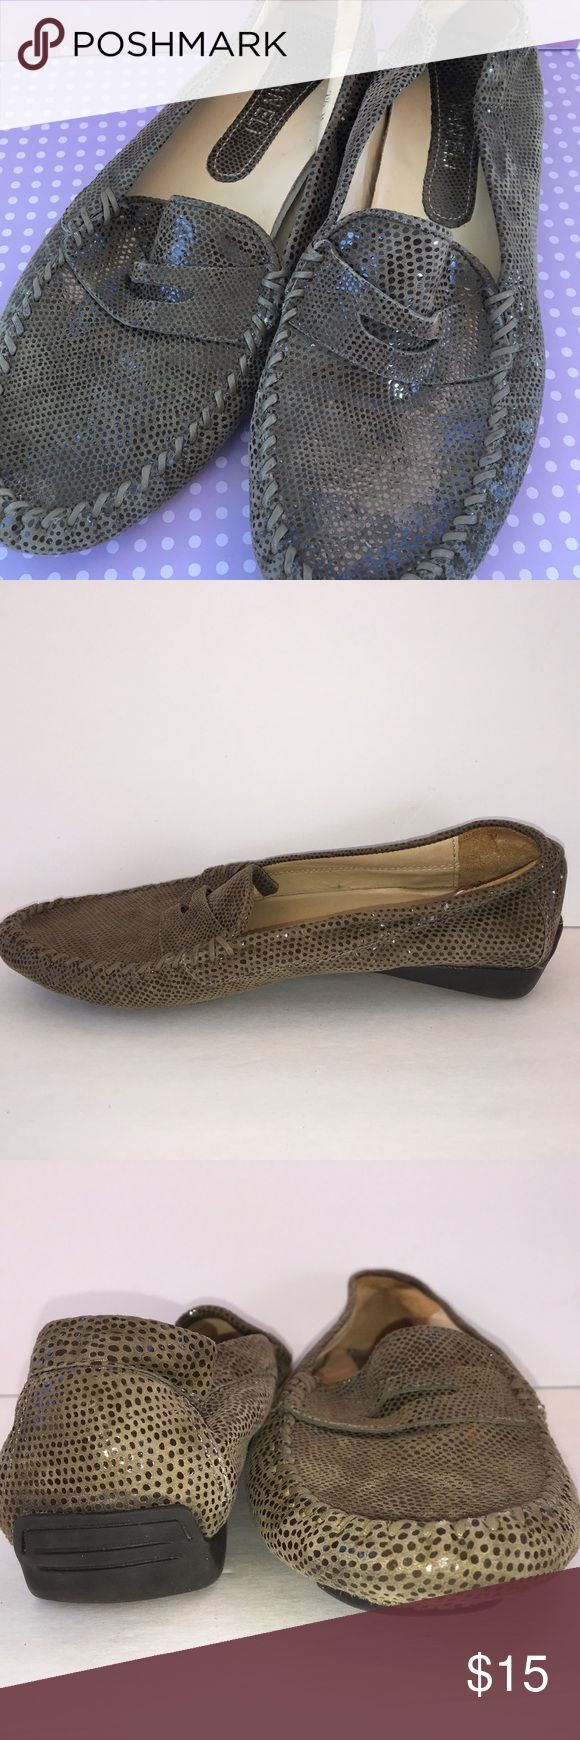 Van Eli Italian Loafers 7.5 Previously worn but in great condition.  Leather is really cool.  They are kind of olive green and the little dots are shiny.  Soles are rubber.  Insoles show wear.  Nice shoes! Van Eli Shoes Flats & Loafers